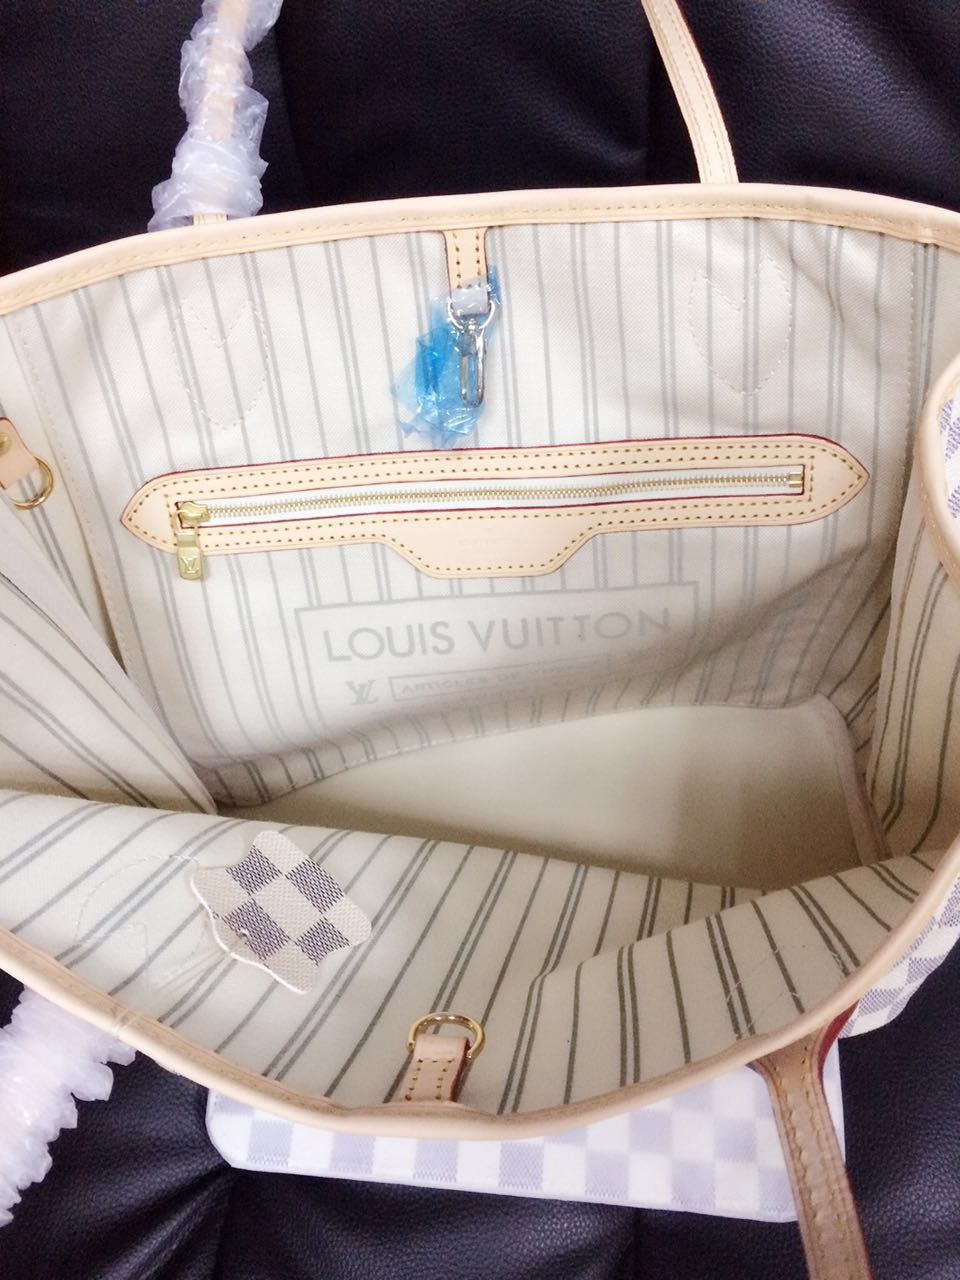 July 2015 – Authentic   Replica Bags Handbags Reviews by thepursequeen 01c942820dfd7